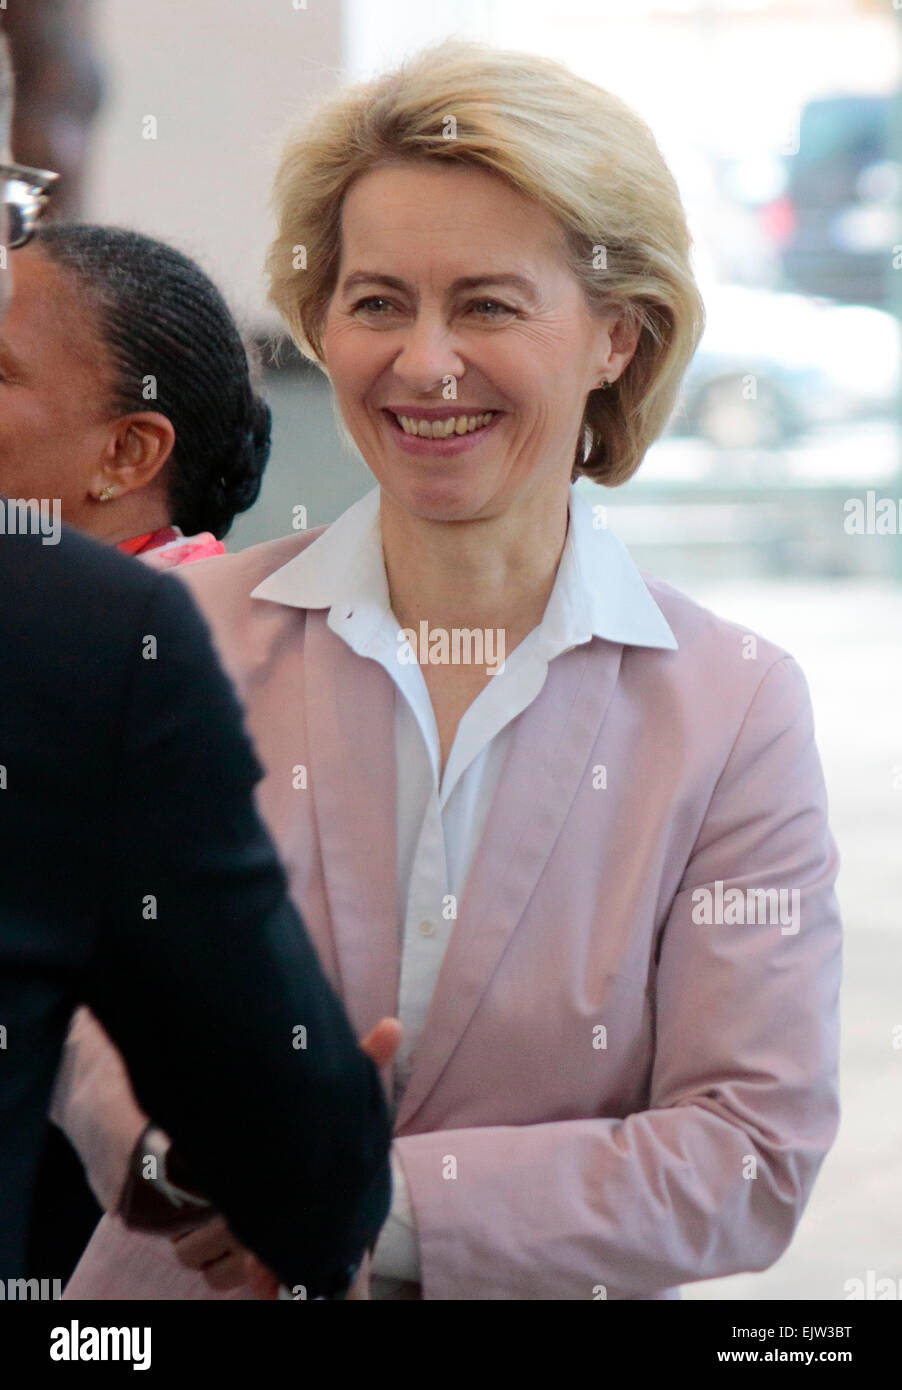 MARCH 31, 2015 - BERLIN: German defense minister Ursula von der Leyen at a photo opp before a meeting of the German - Stock Image